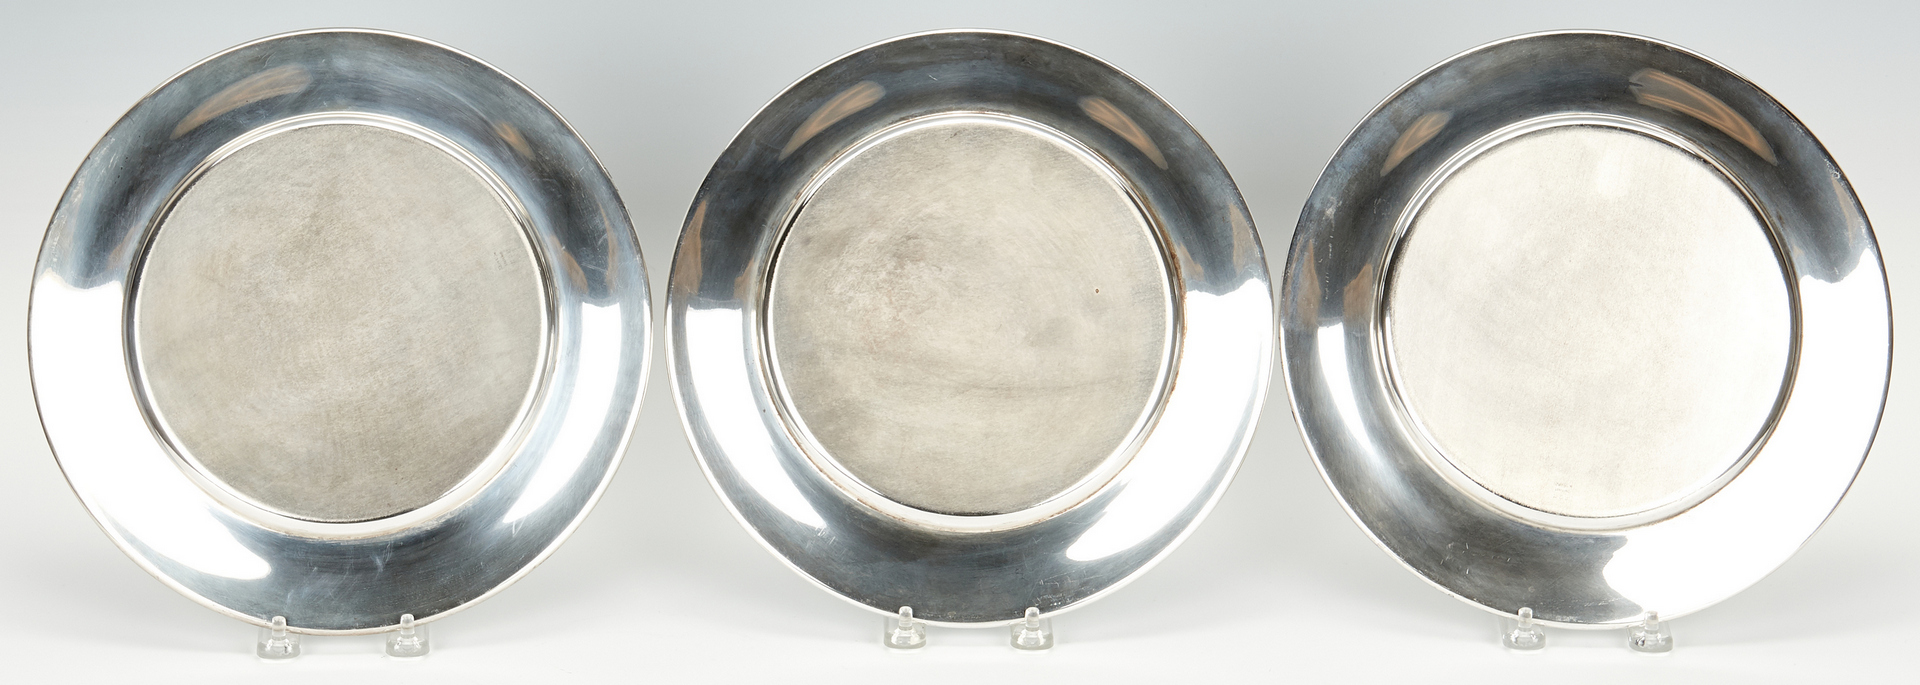 Lot 239: 8 Kirk Sterling Silver Chargers